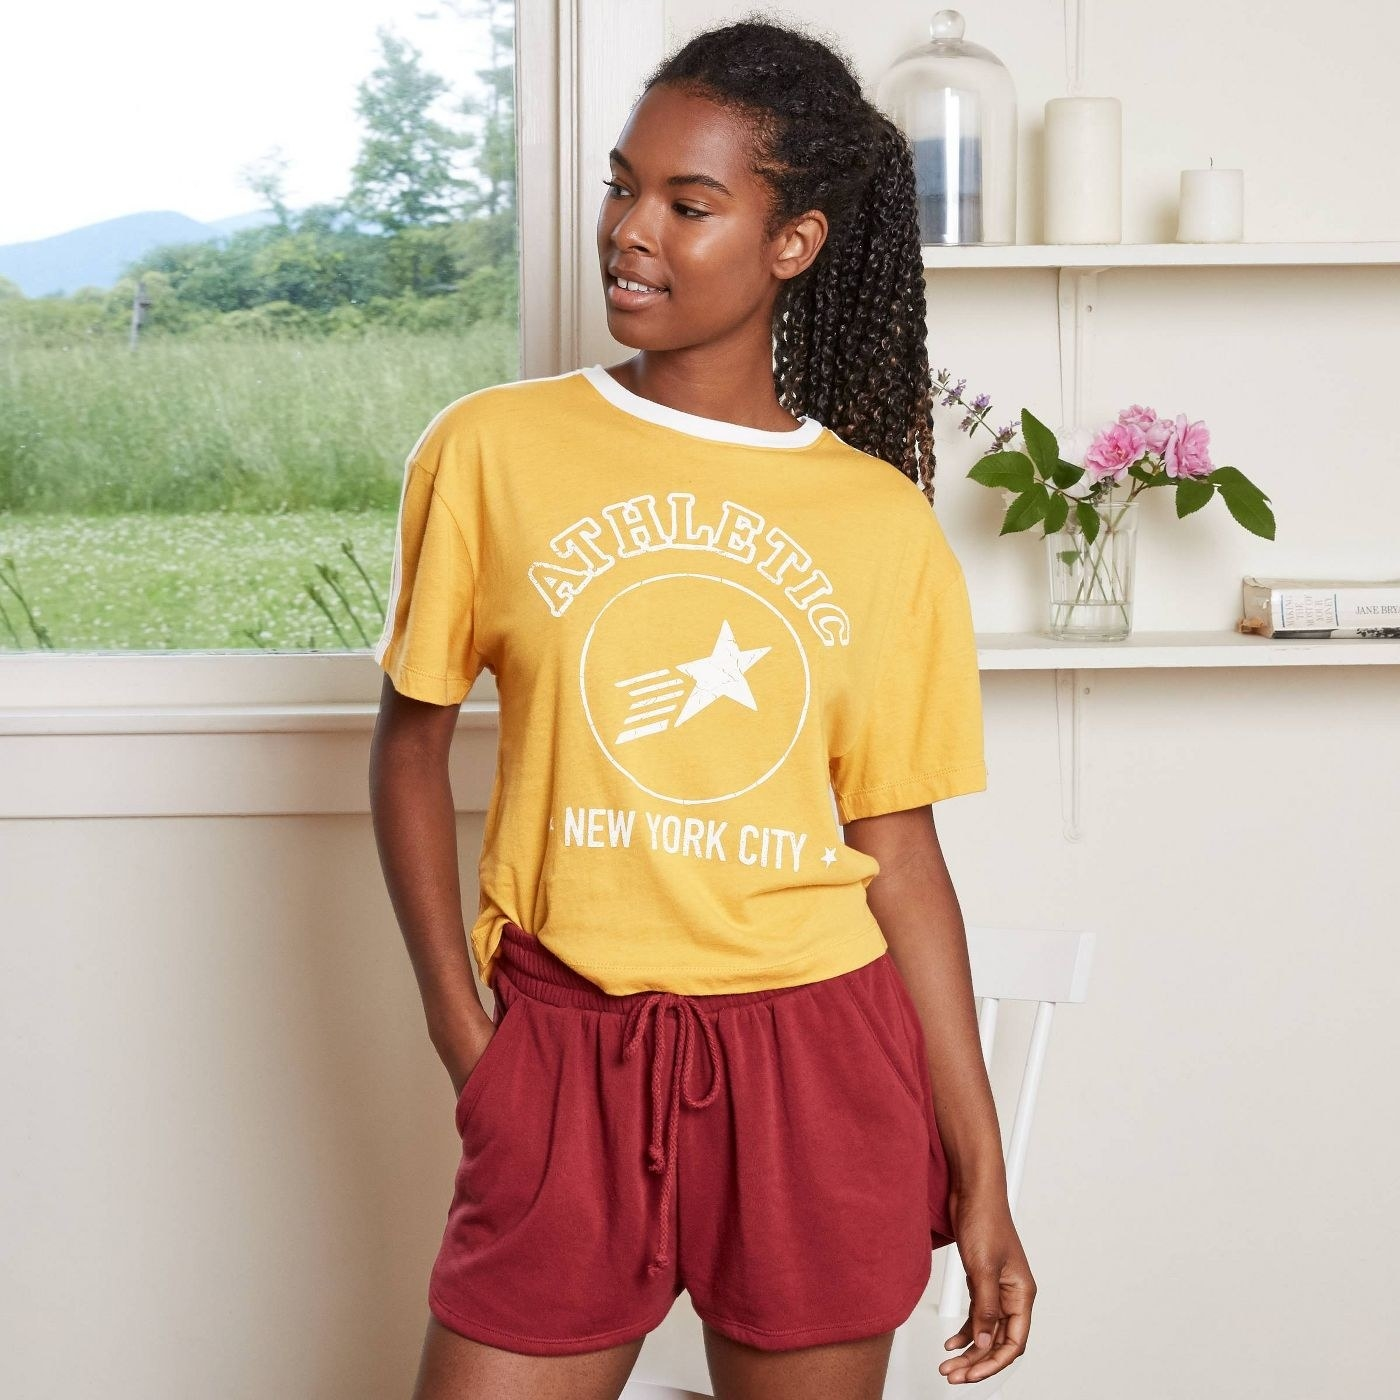 model wearing yellow graphic tee